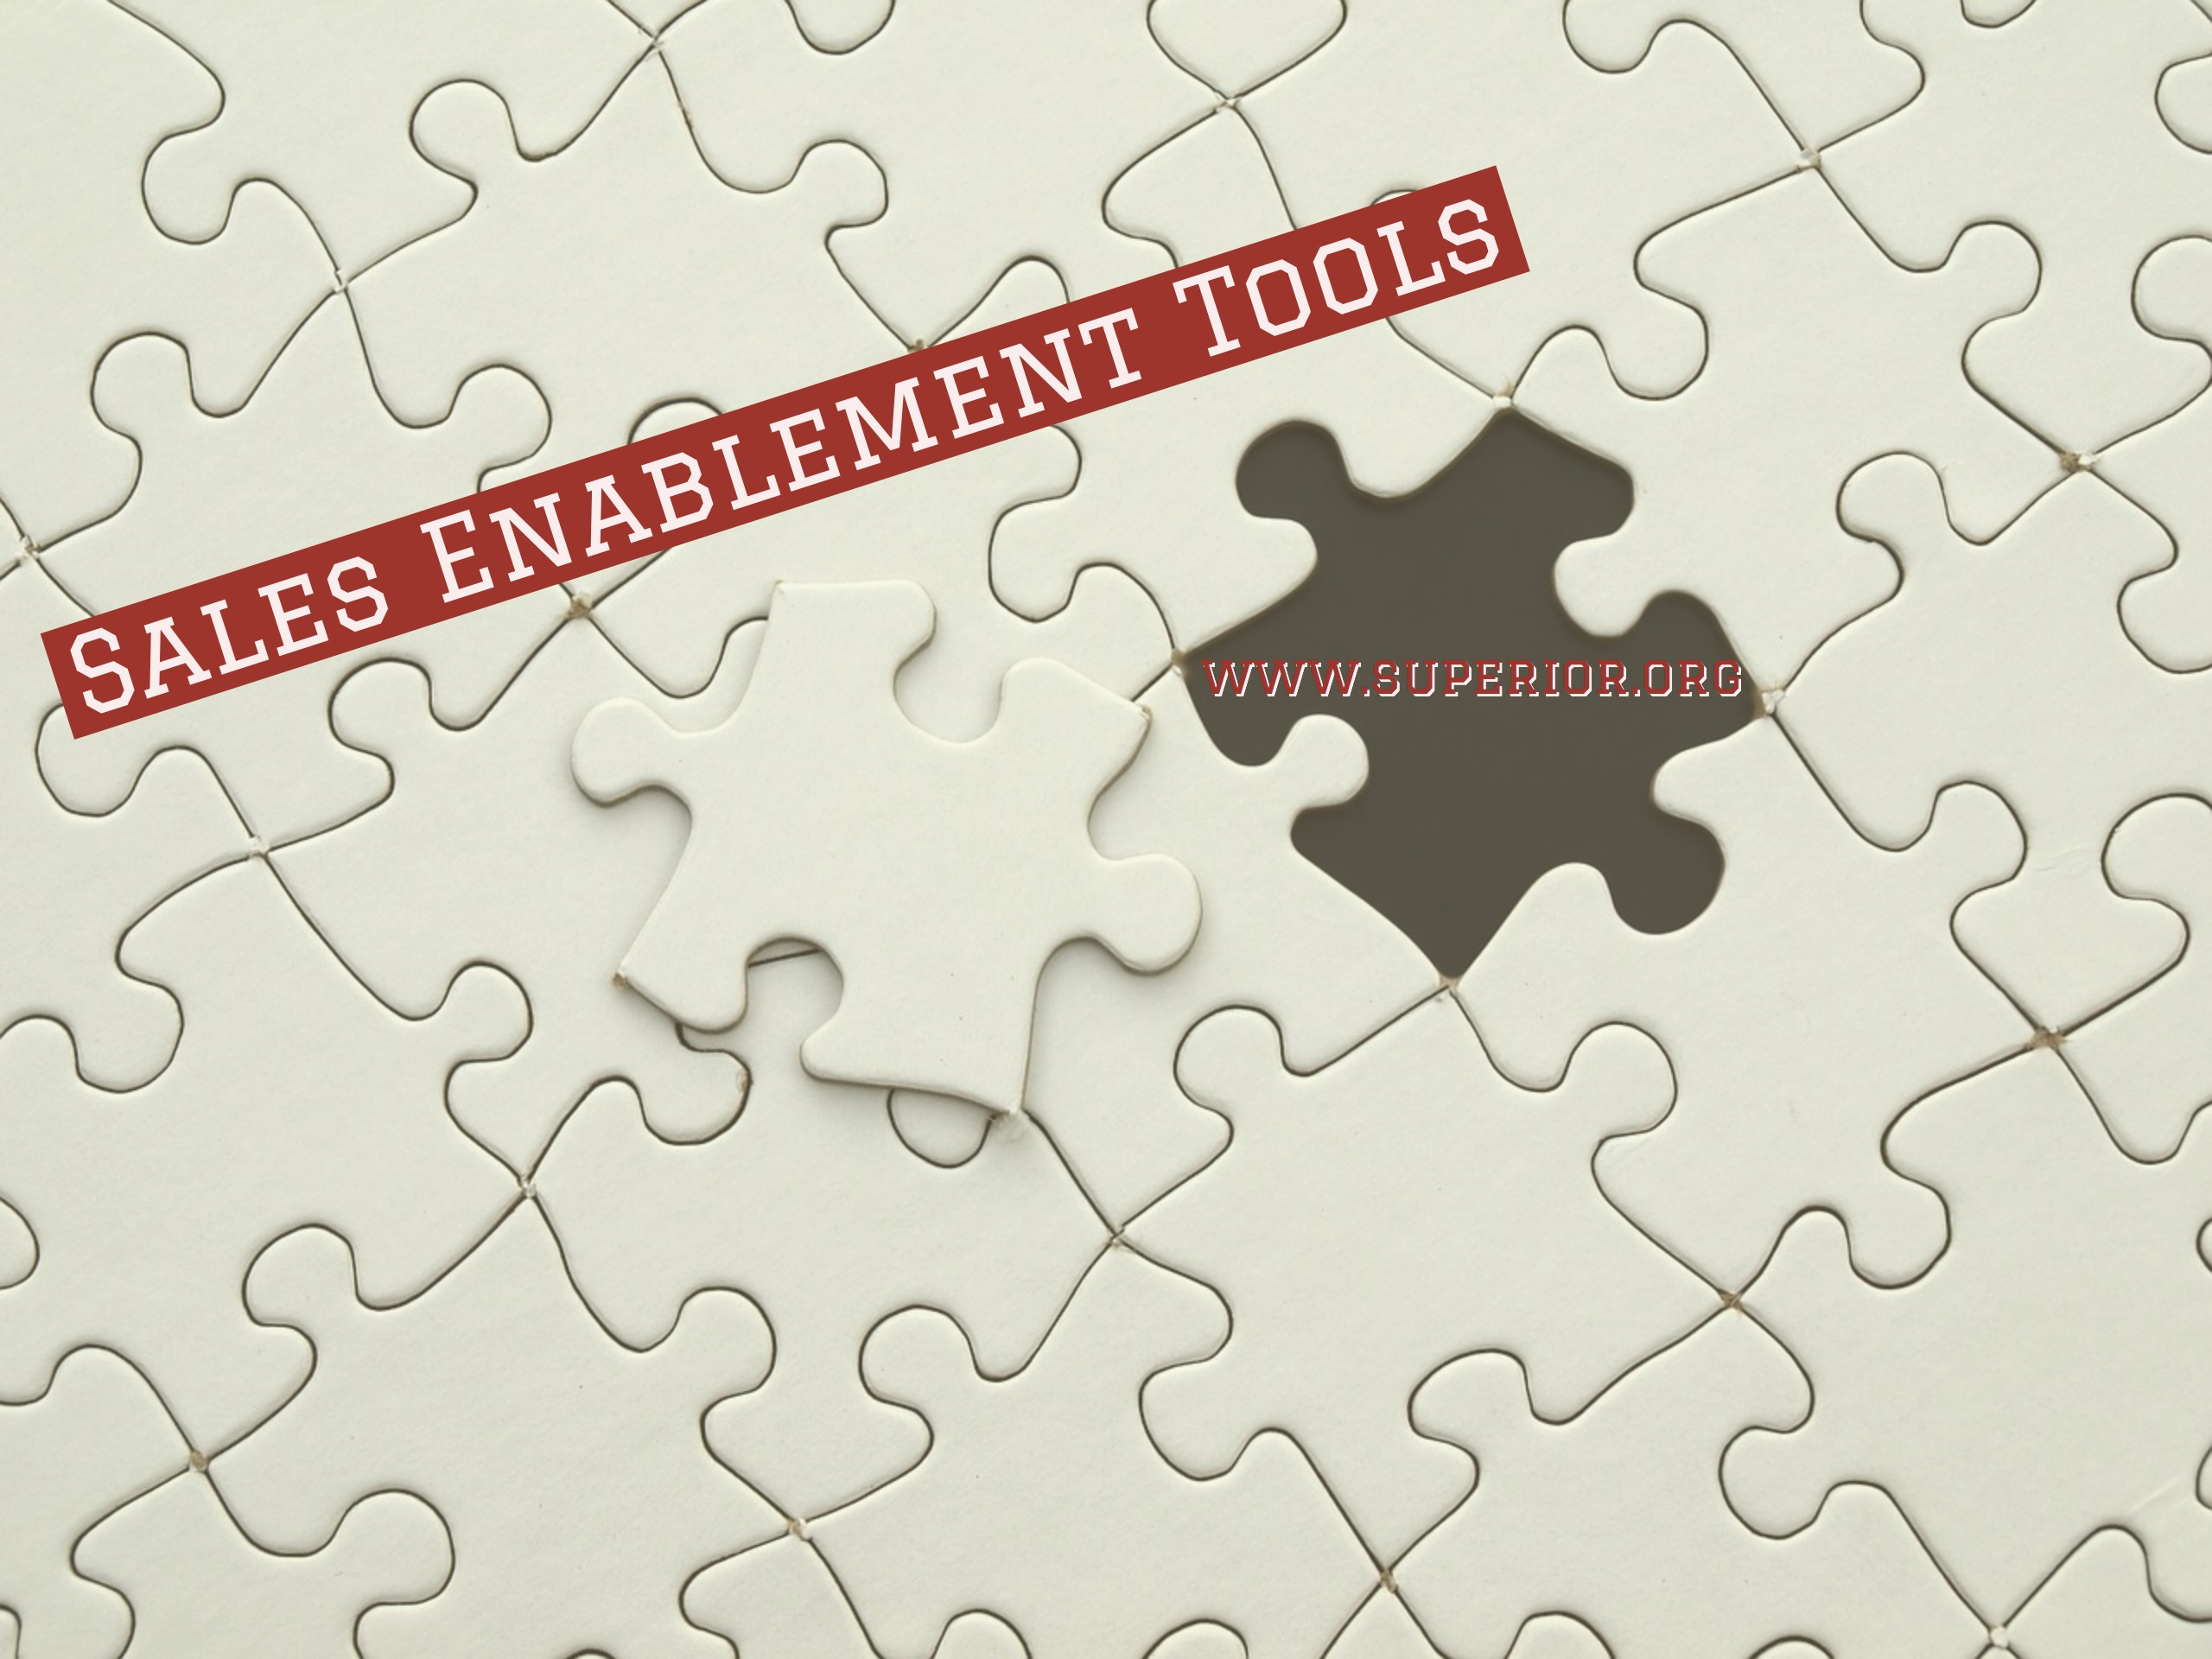 Sales Enablement Tools That Increase Sales and Save Time